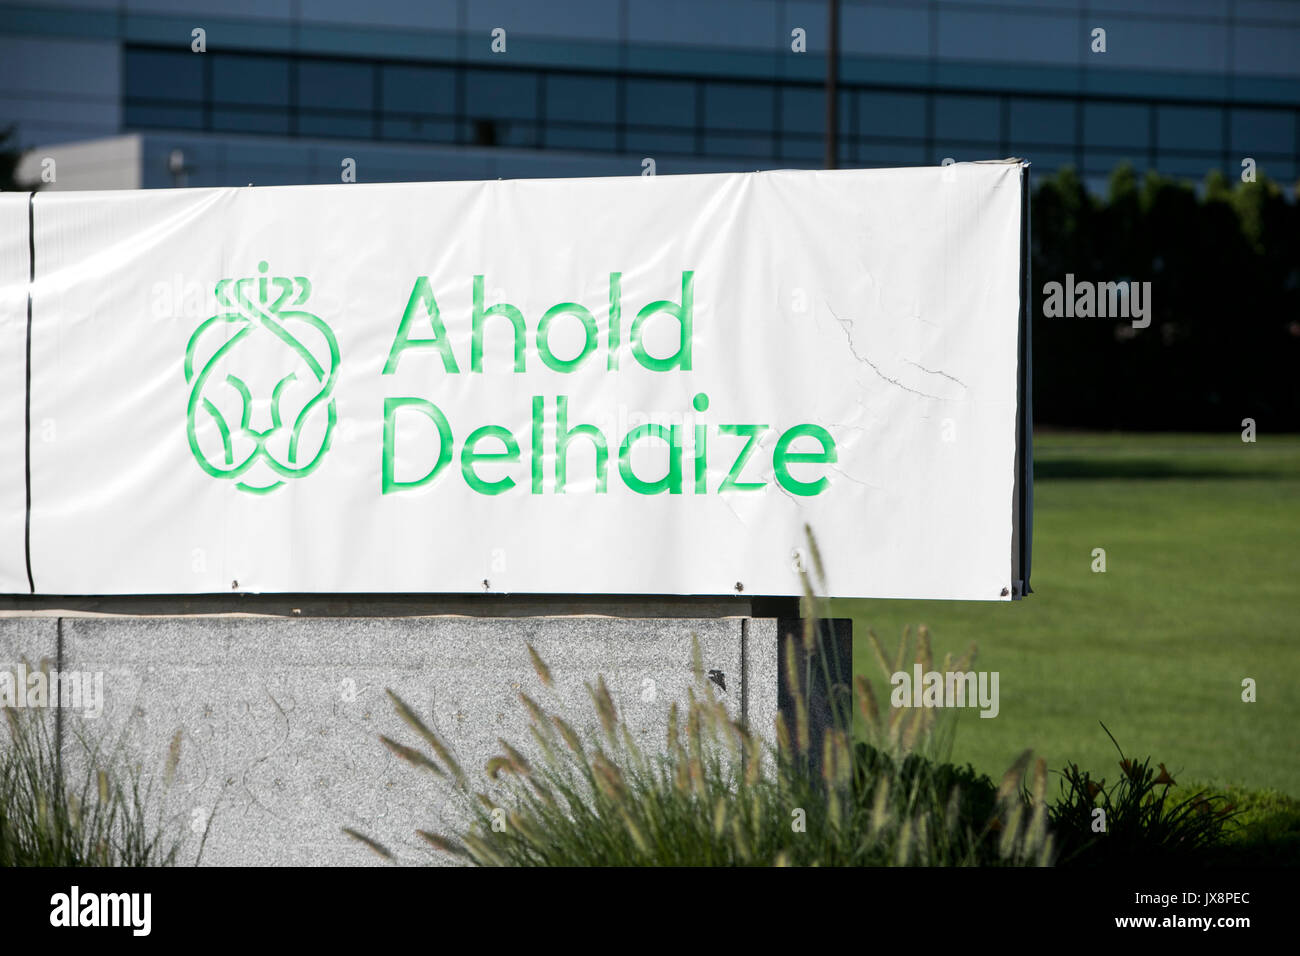 A logo sign outside of a facility occupied by Ahold Delhaize